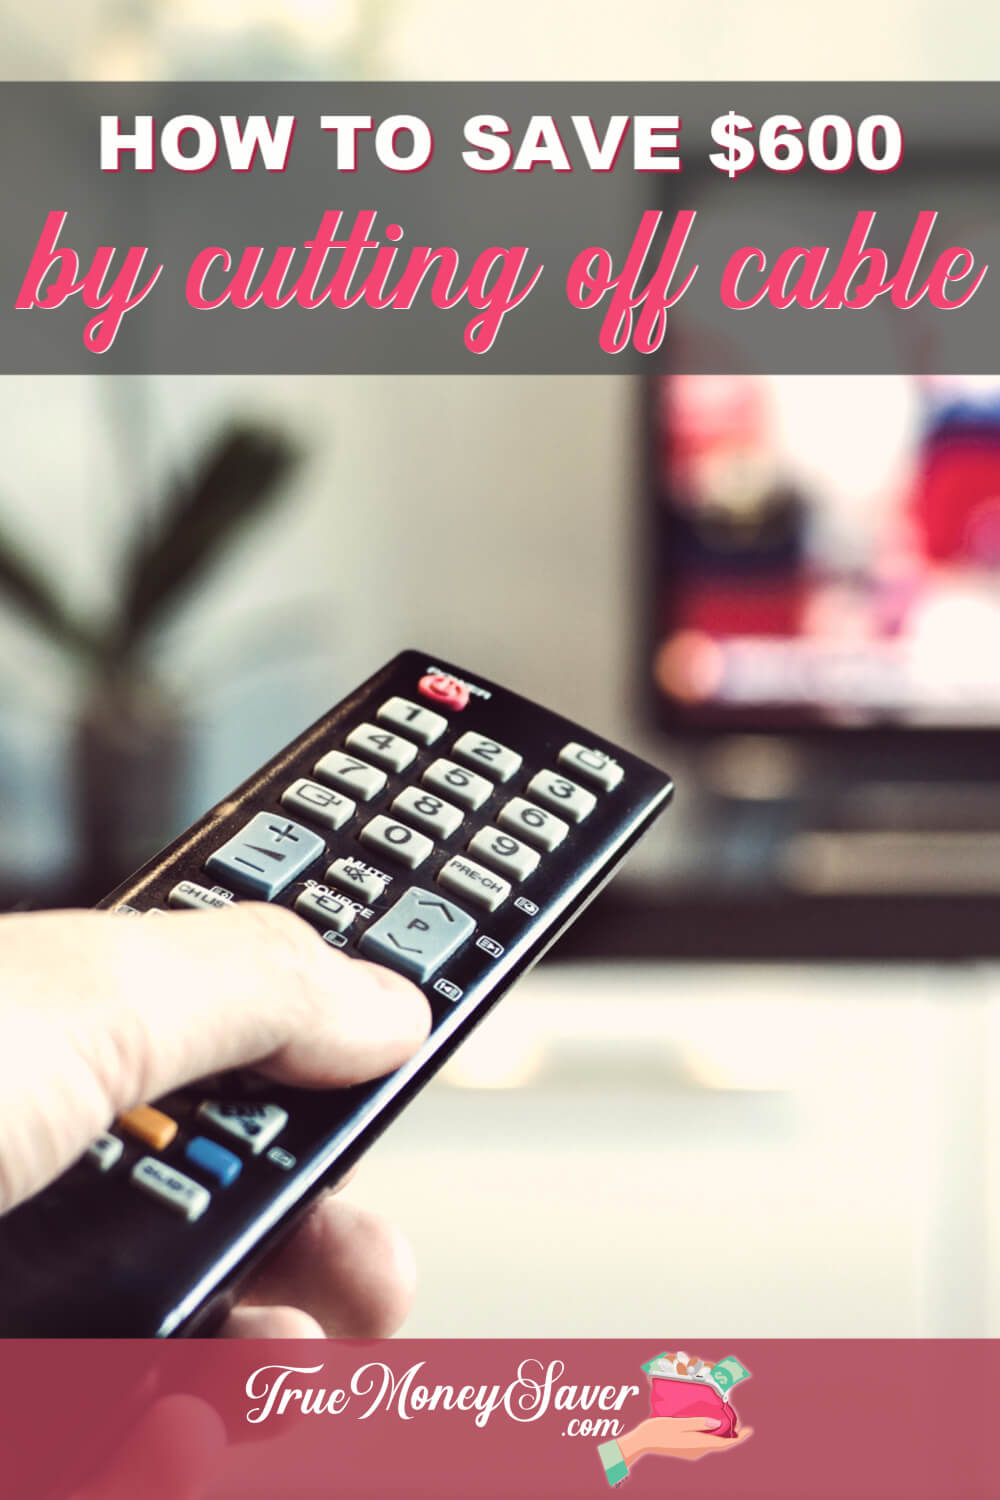 How We Saved $604 This Year Cutting Off Cable! {And Still Have Too Much TV To Watch!}